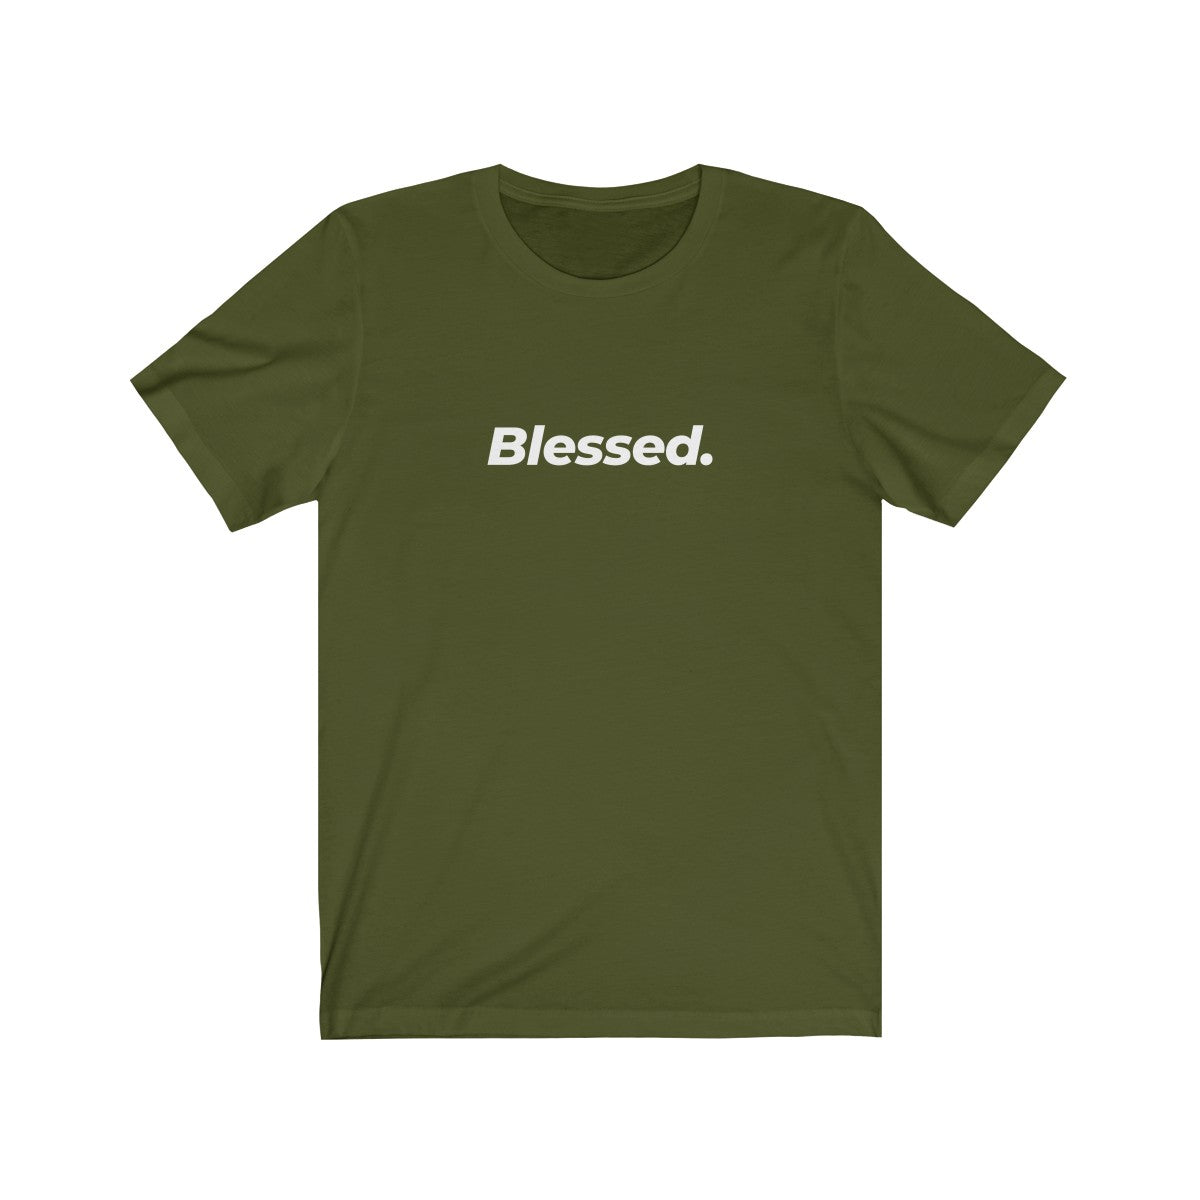 Blessed Are The Unisex Jersey Short Sleeve Tee - FRONT & BACK PRINT